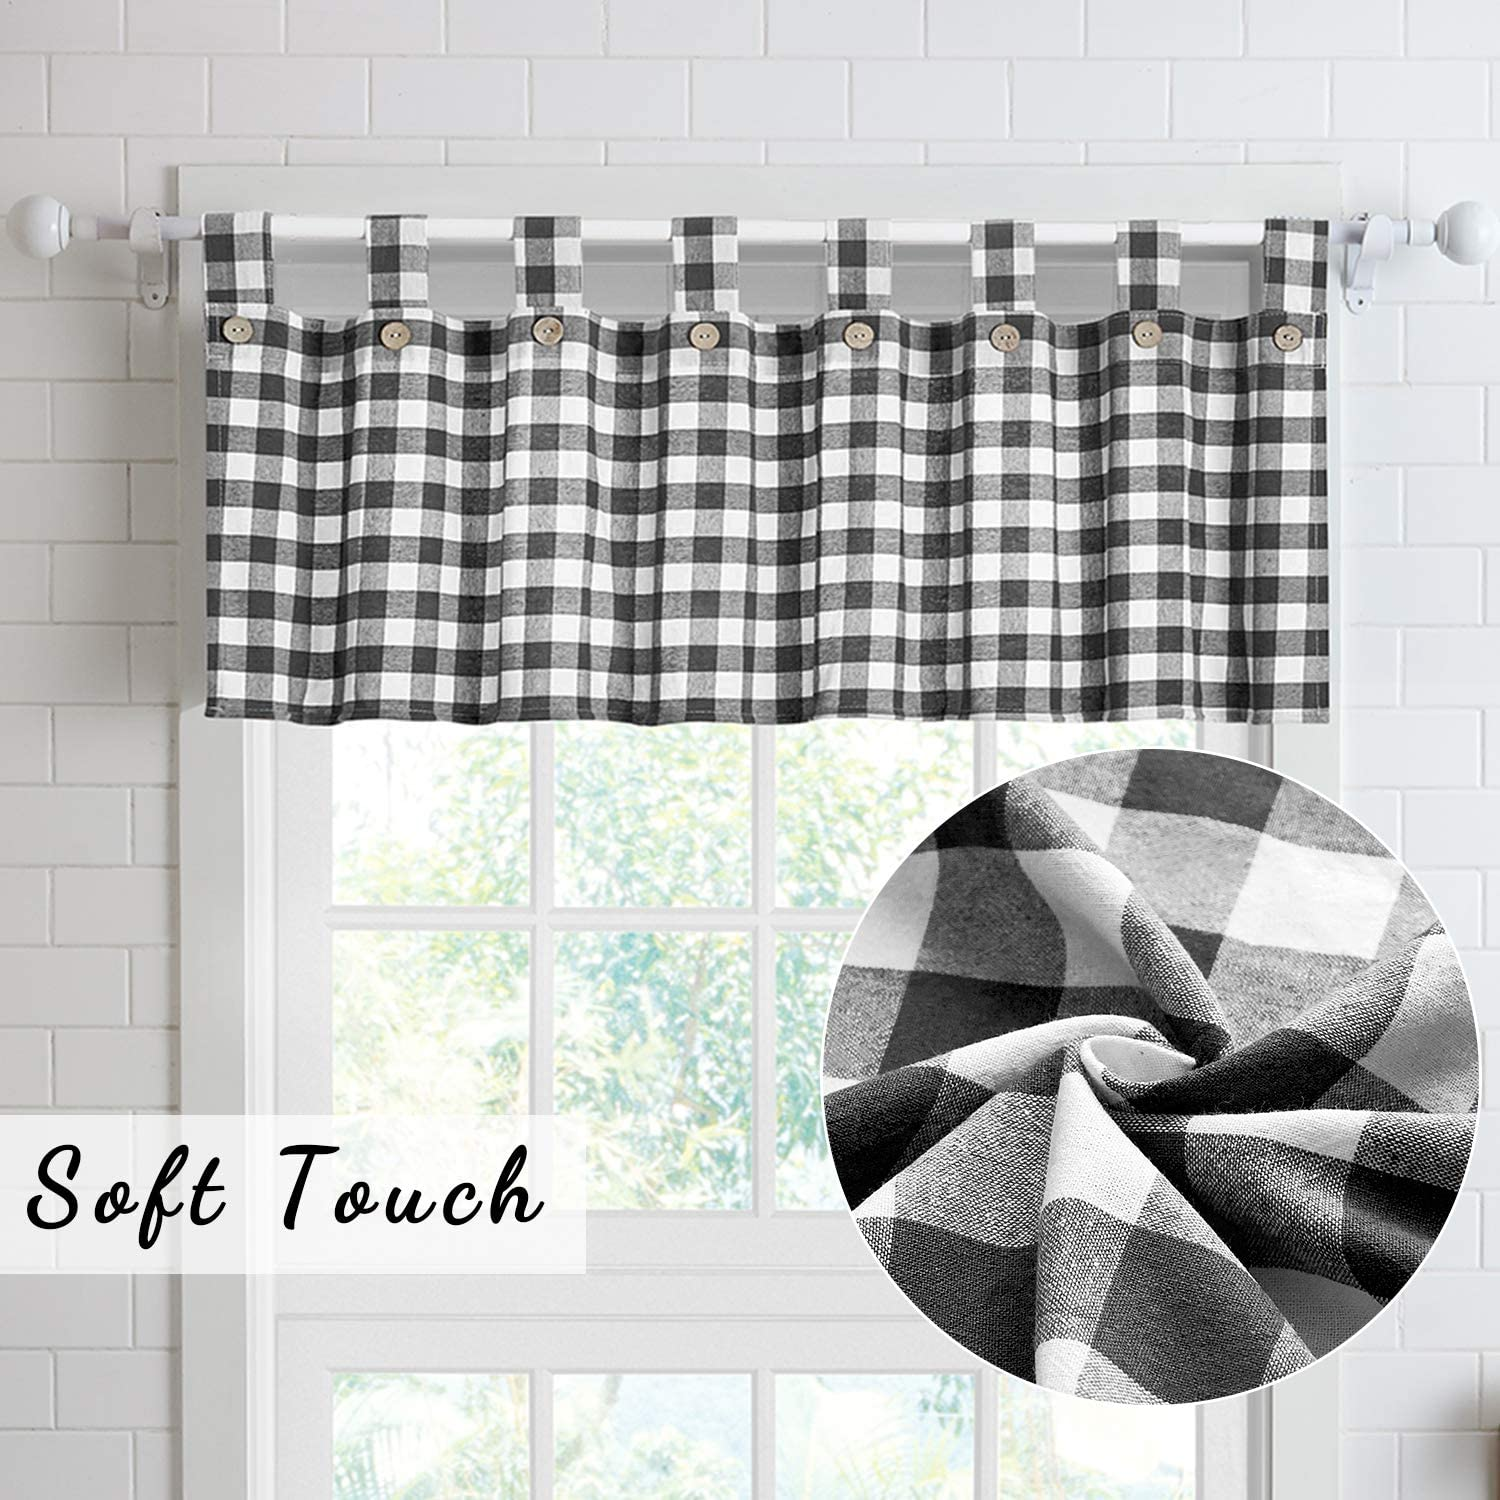 Buy 3 Piece Cotton Kitchen Curtains And Valances Set For Small Windows Short Curtains 36 Inches Length For Cafe Bathroom Tab Top 56 X 36 Black White Online In Turkey B091tnr12w